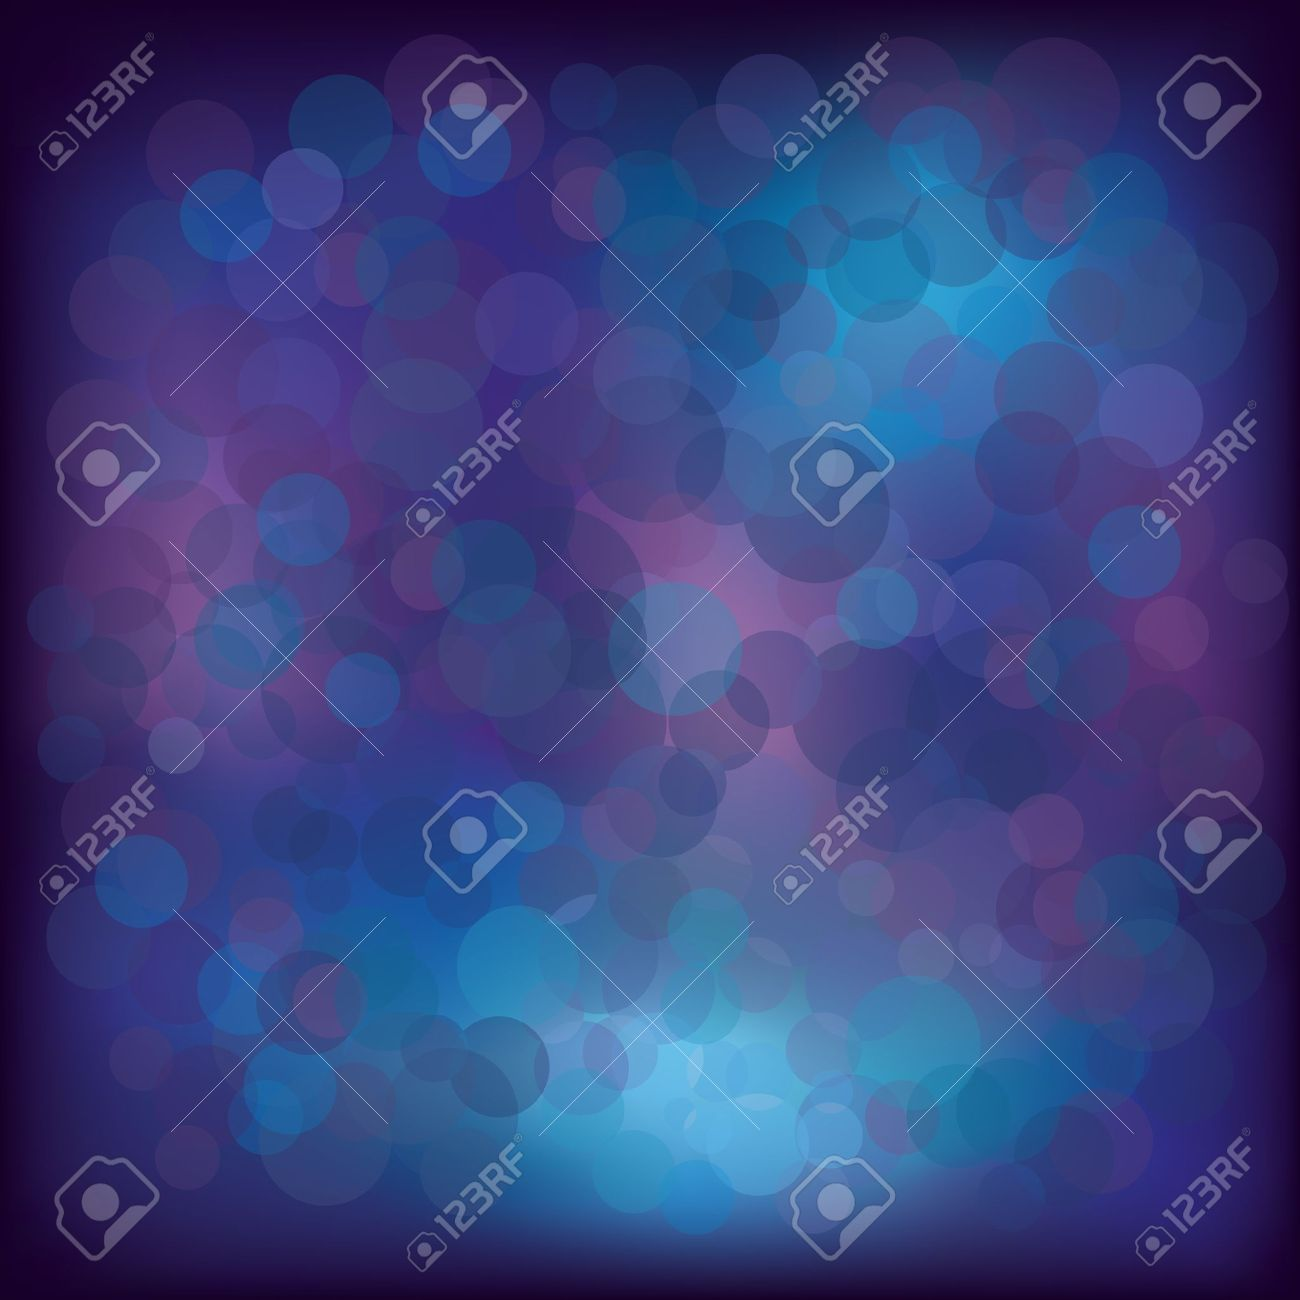 Colorful abstract background blue -violet -pink with decorative elements Vector illustration EPS 10 with transparency - 11987062